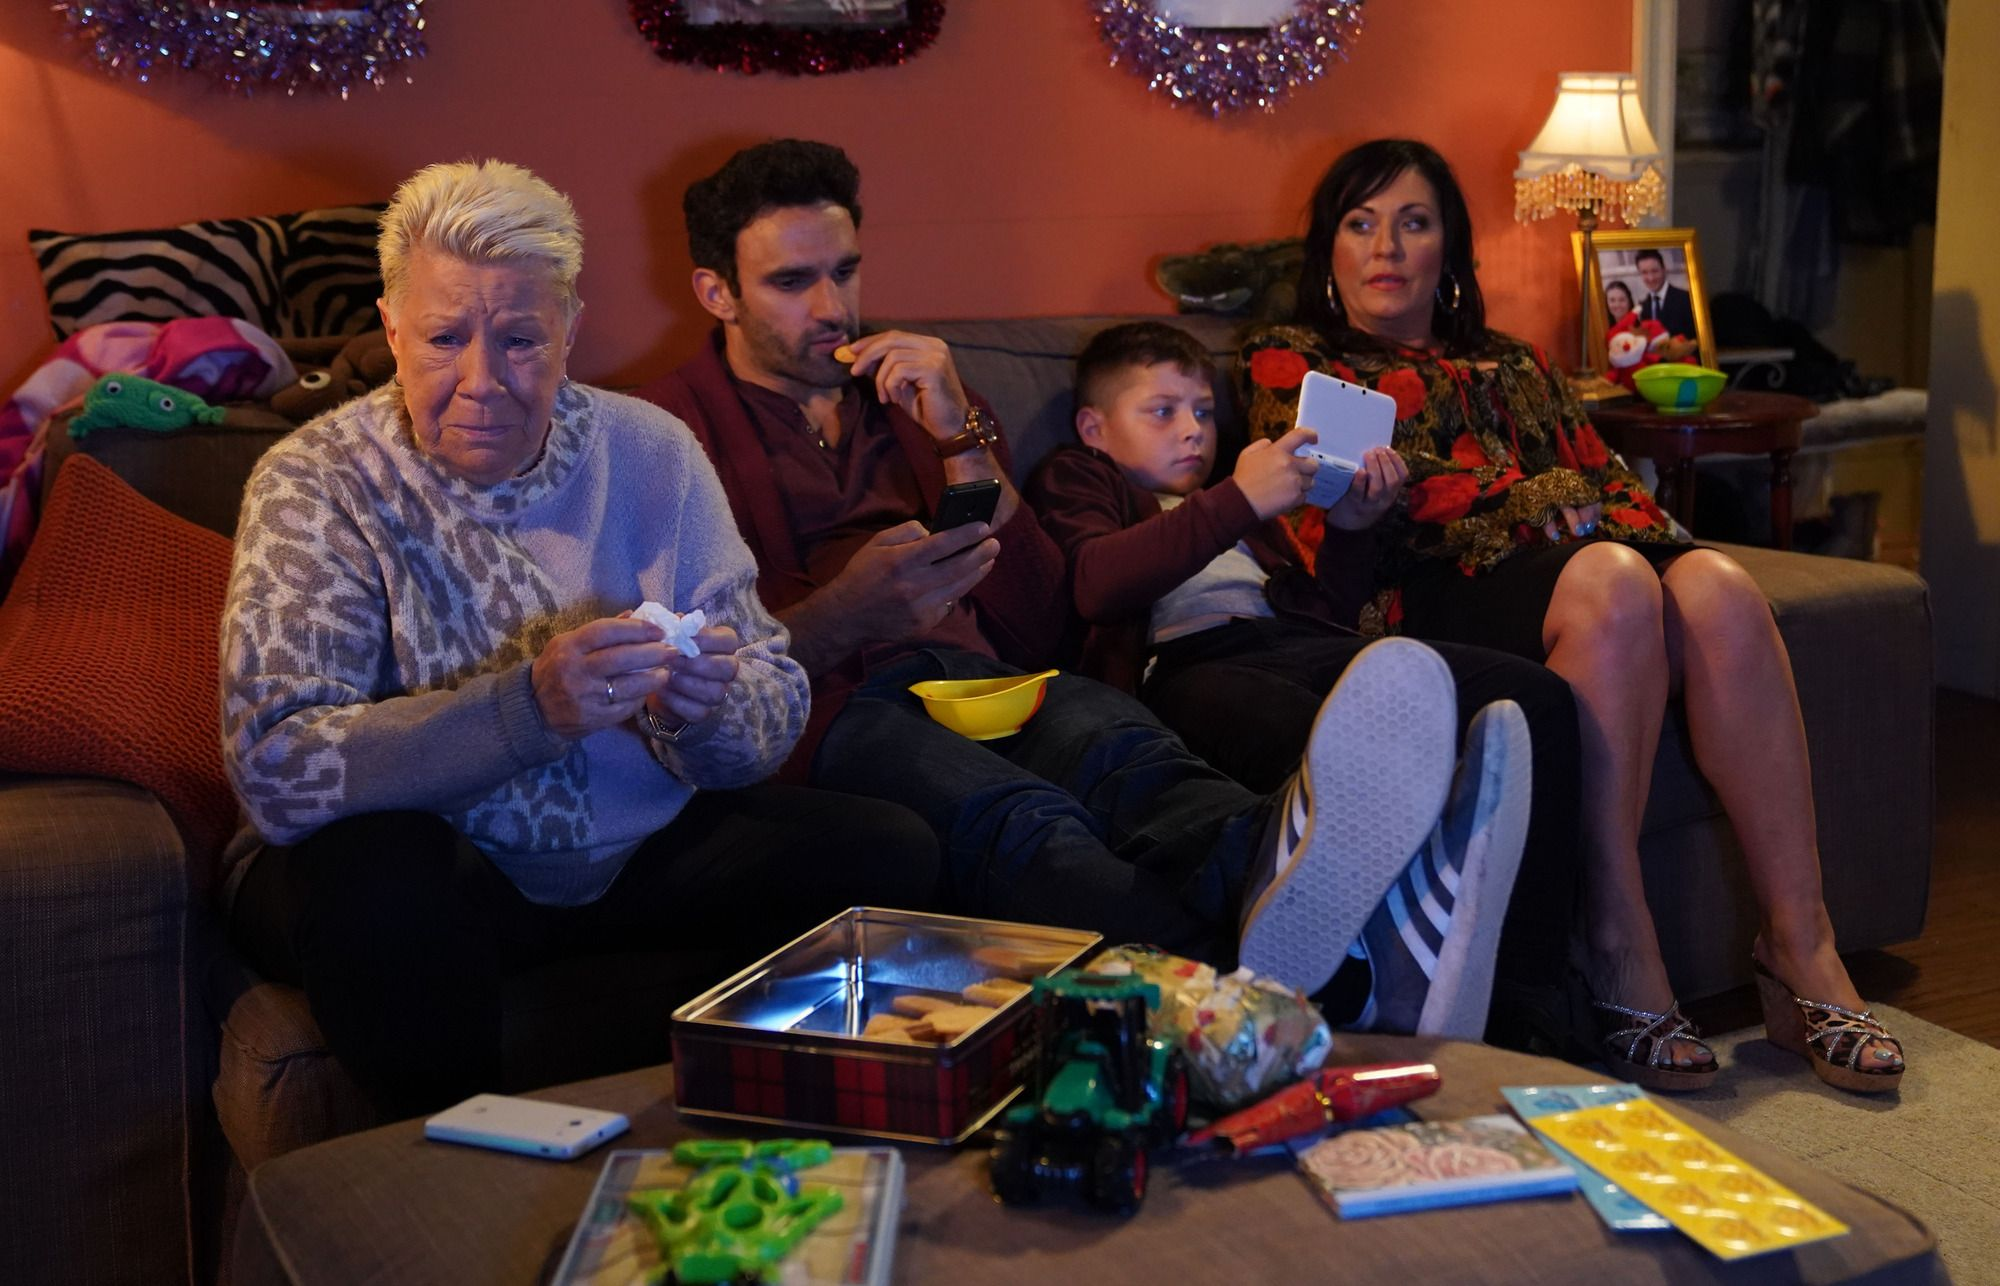 EastEnders is lining up a surprise for the Slaters as they get huge news on Christmas Day